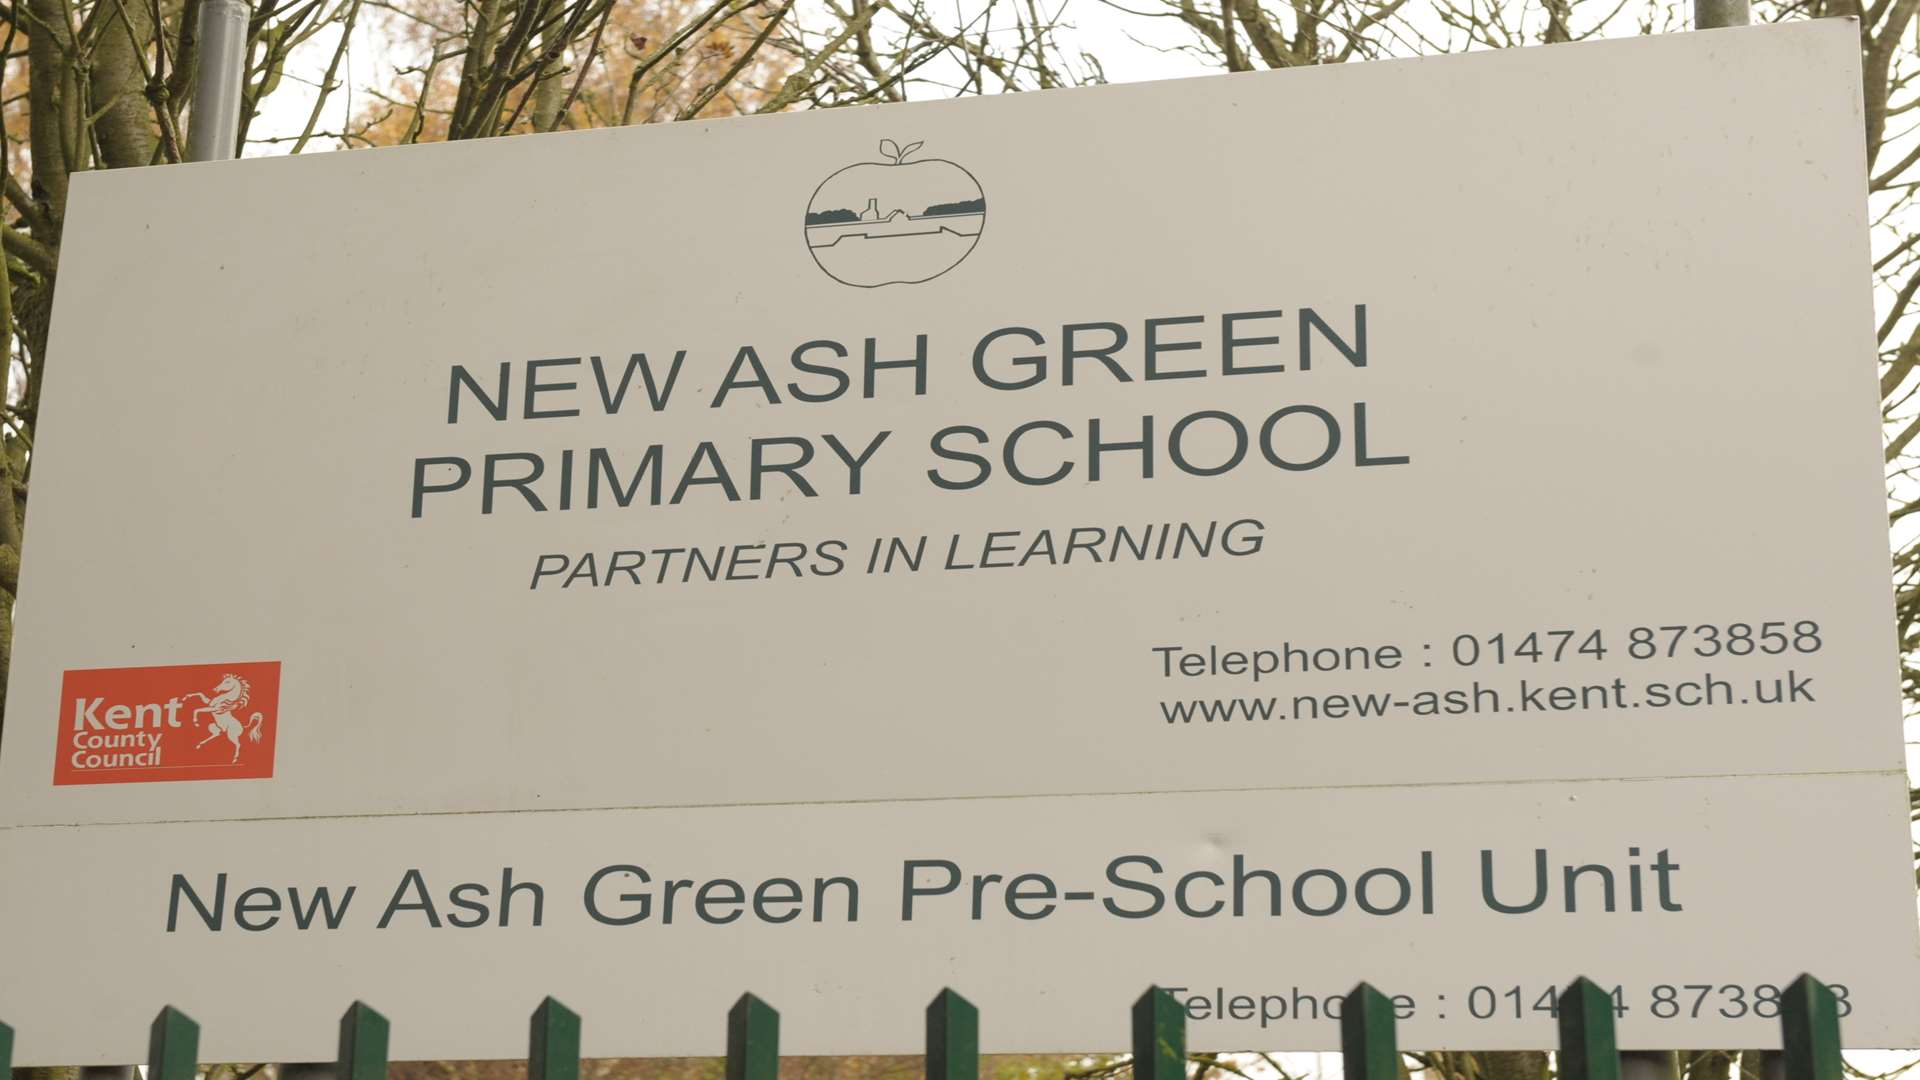 New Ash Green Primary